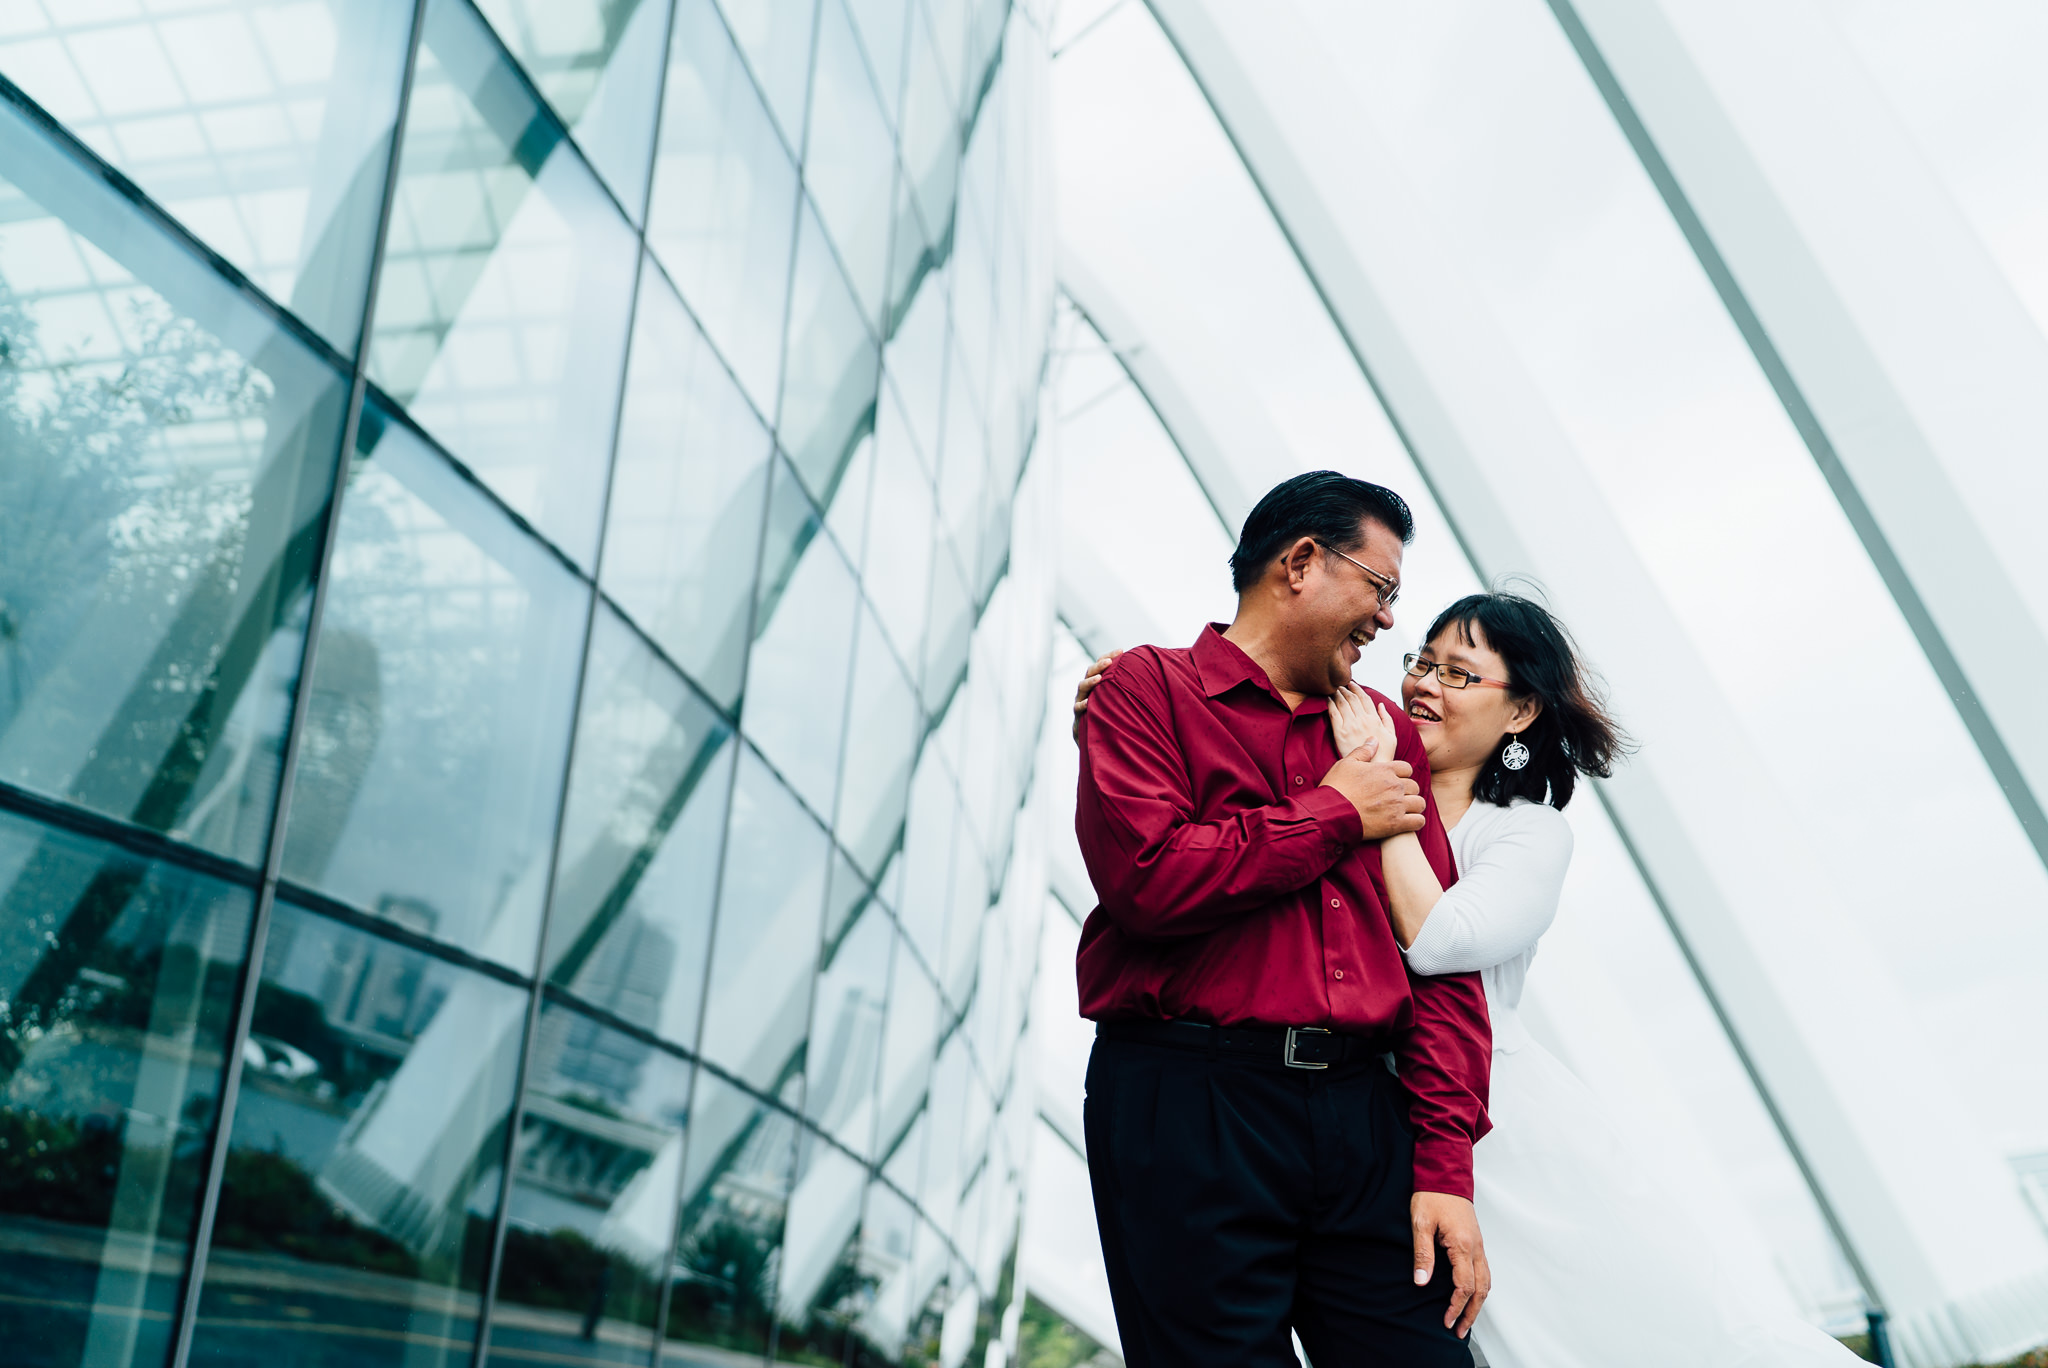 Clifford & Shumei U&I Session (83 of 112).jpg